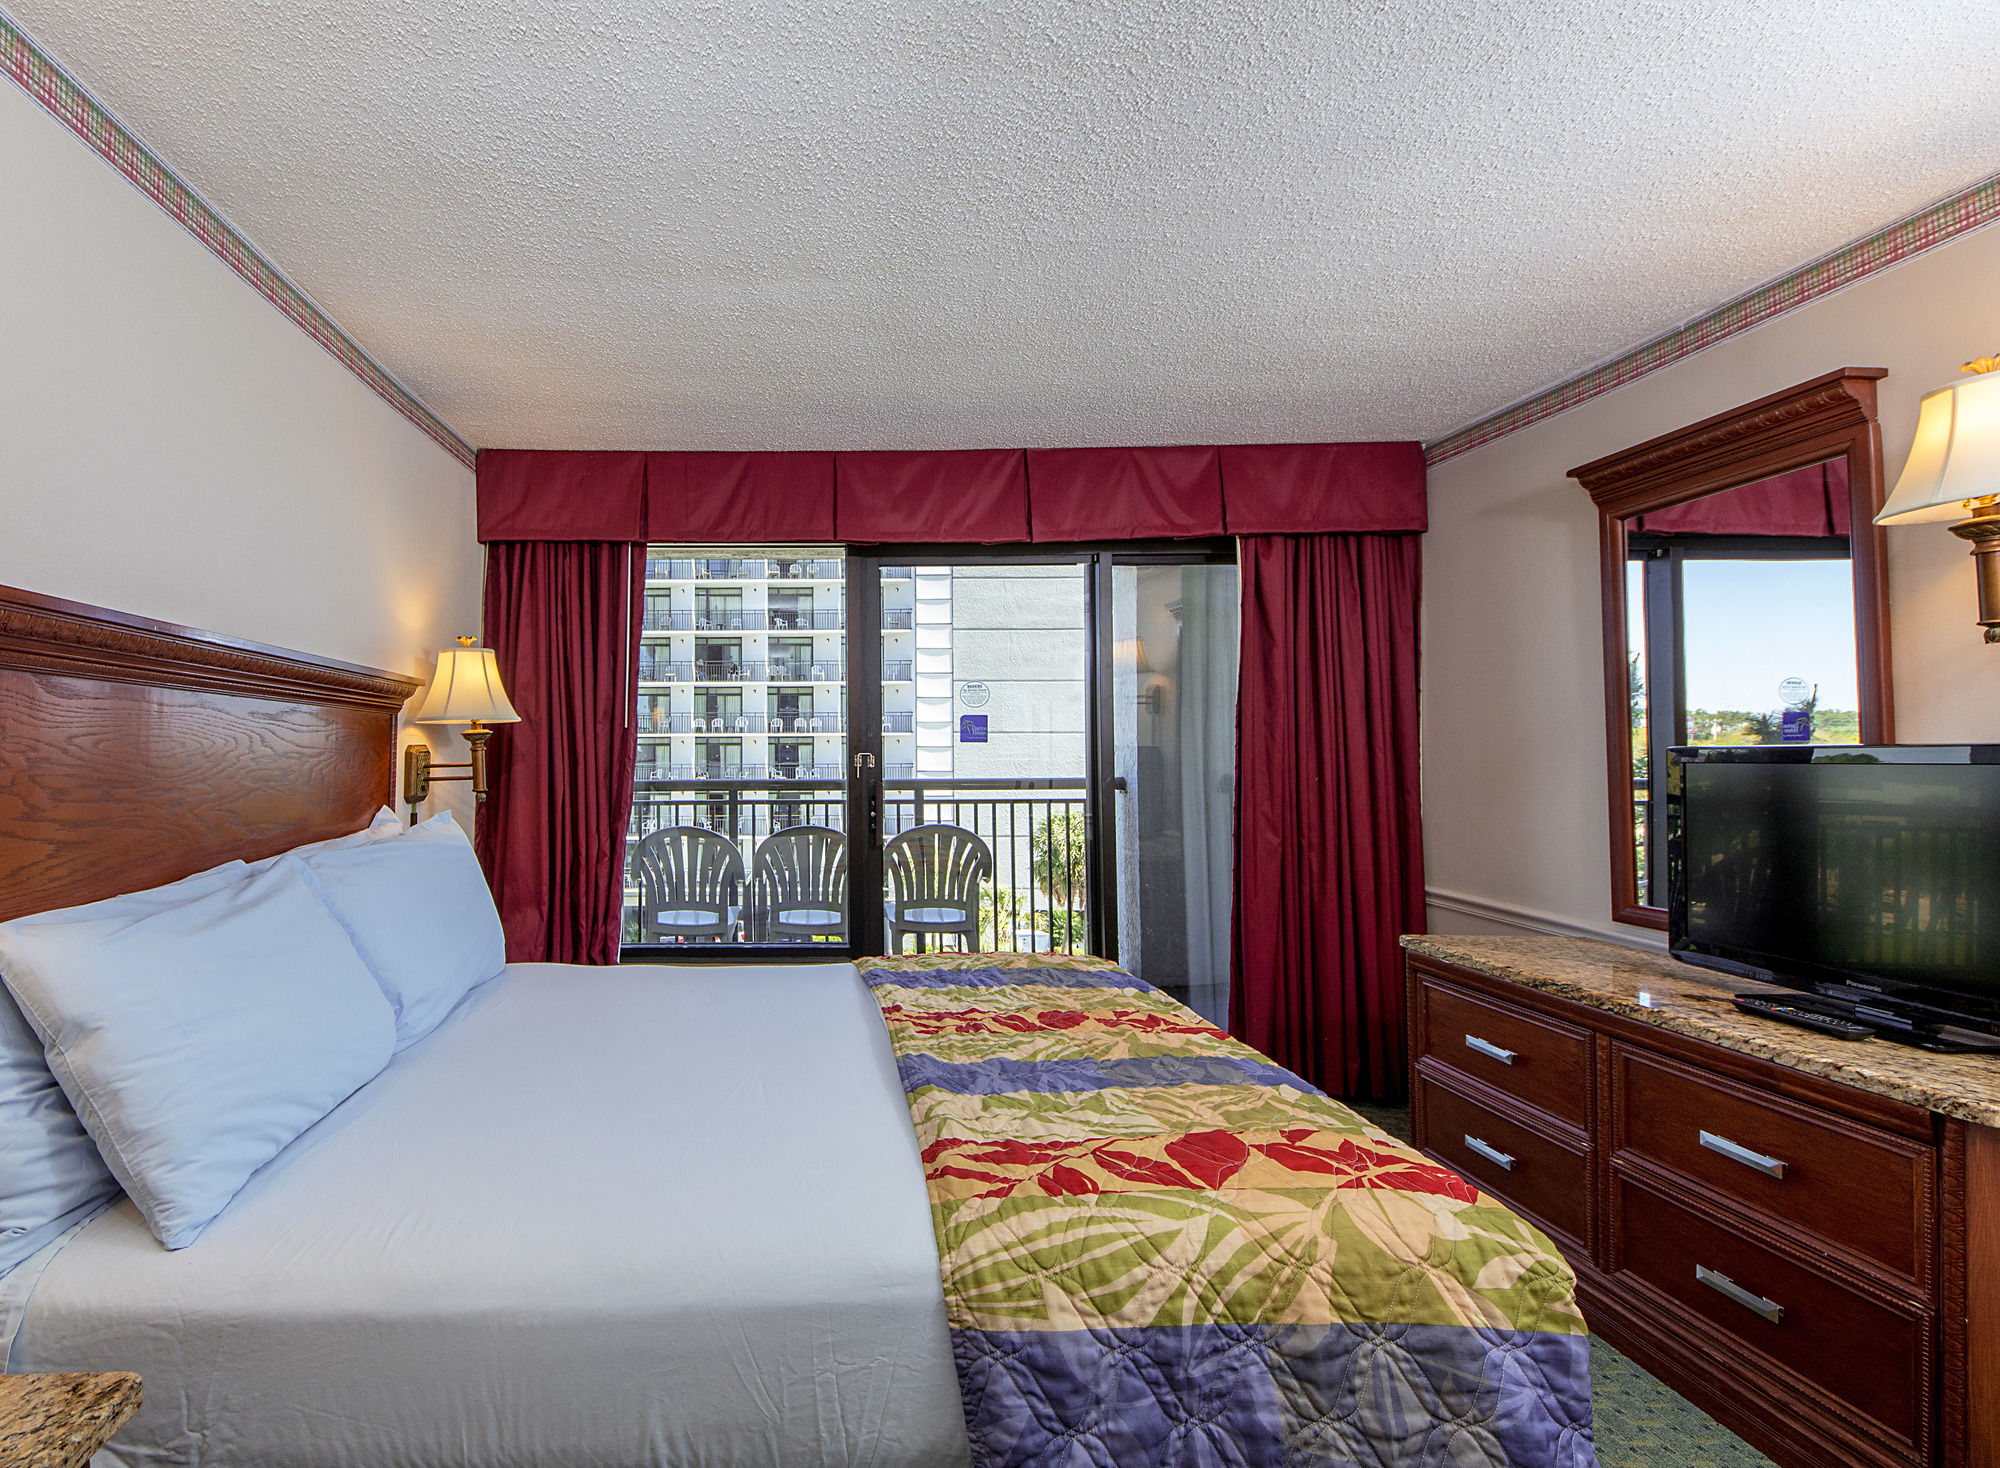 Discount Coupon For Dayton House Resort In Myrtle Beach